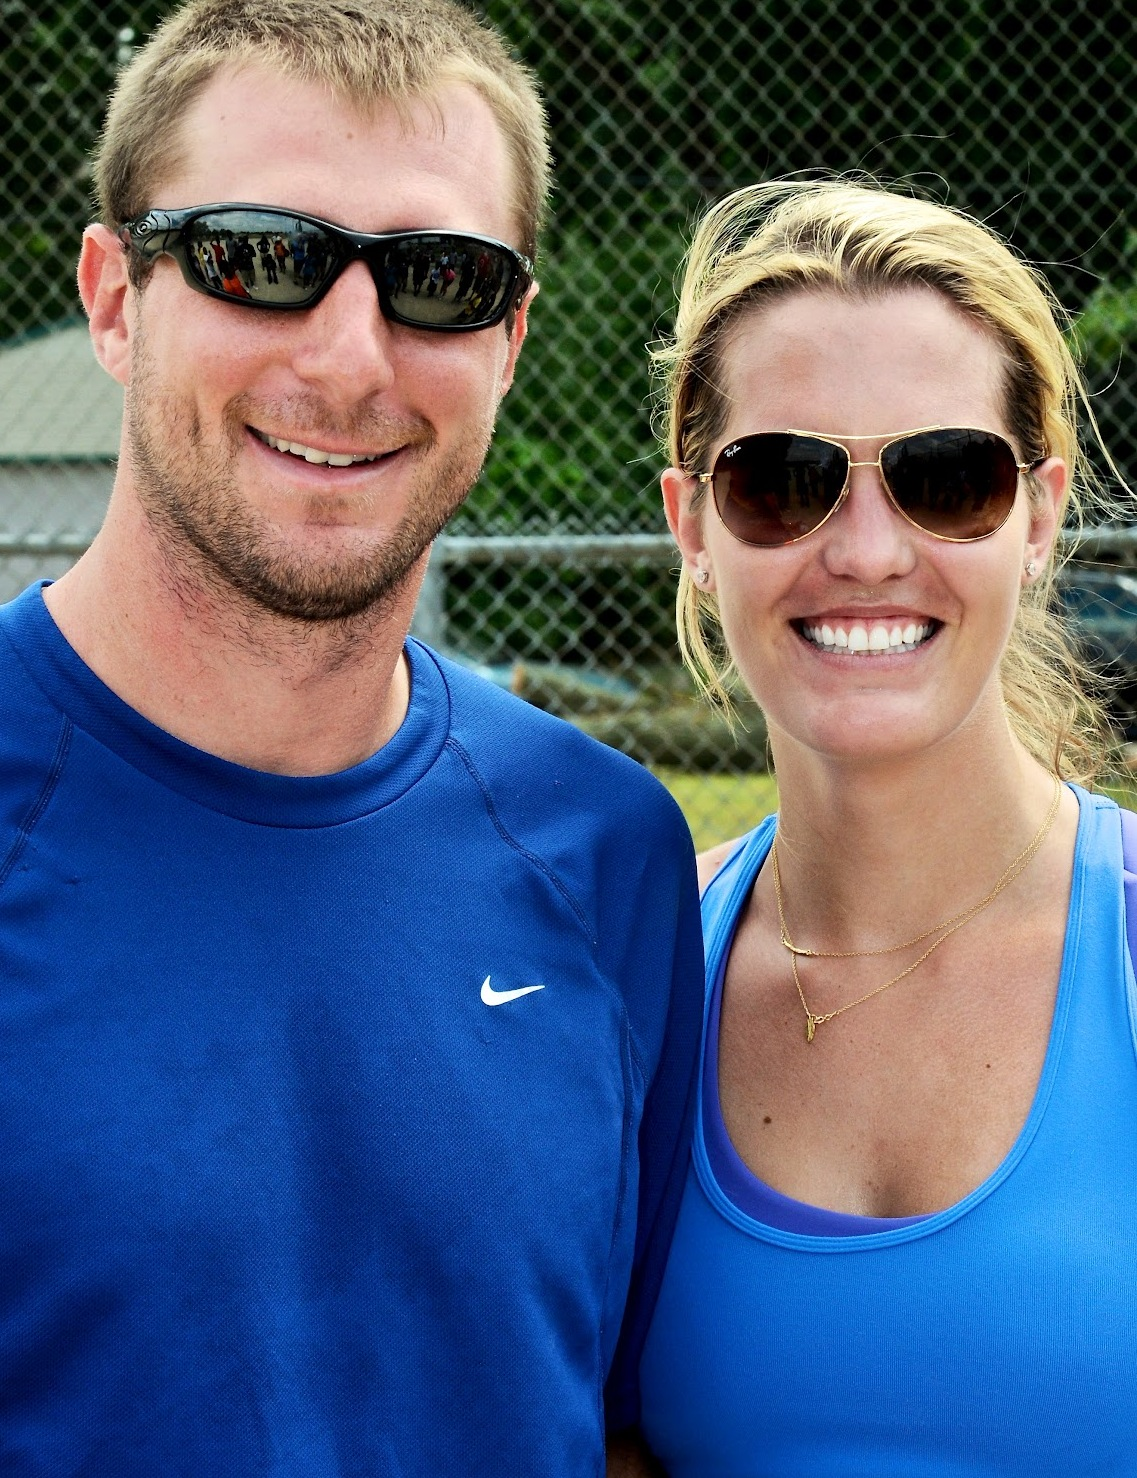 12 erica may (max scherzer girlfriend) baseball world series wags